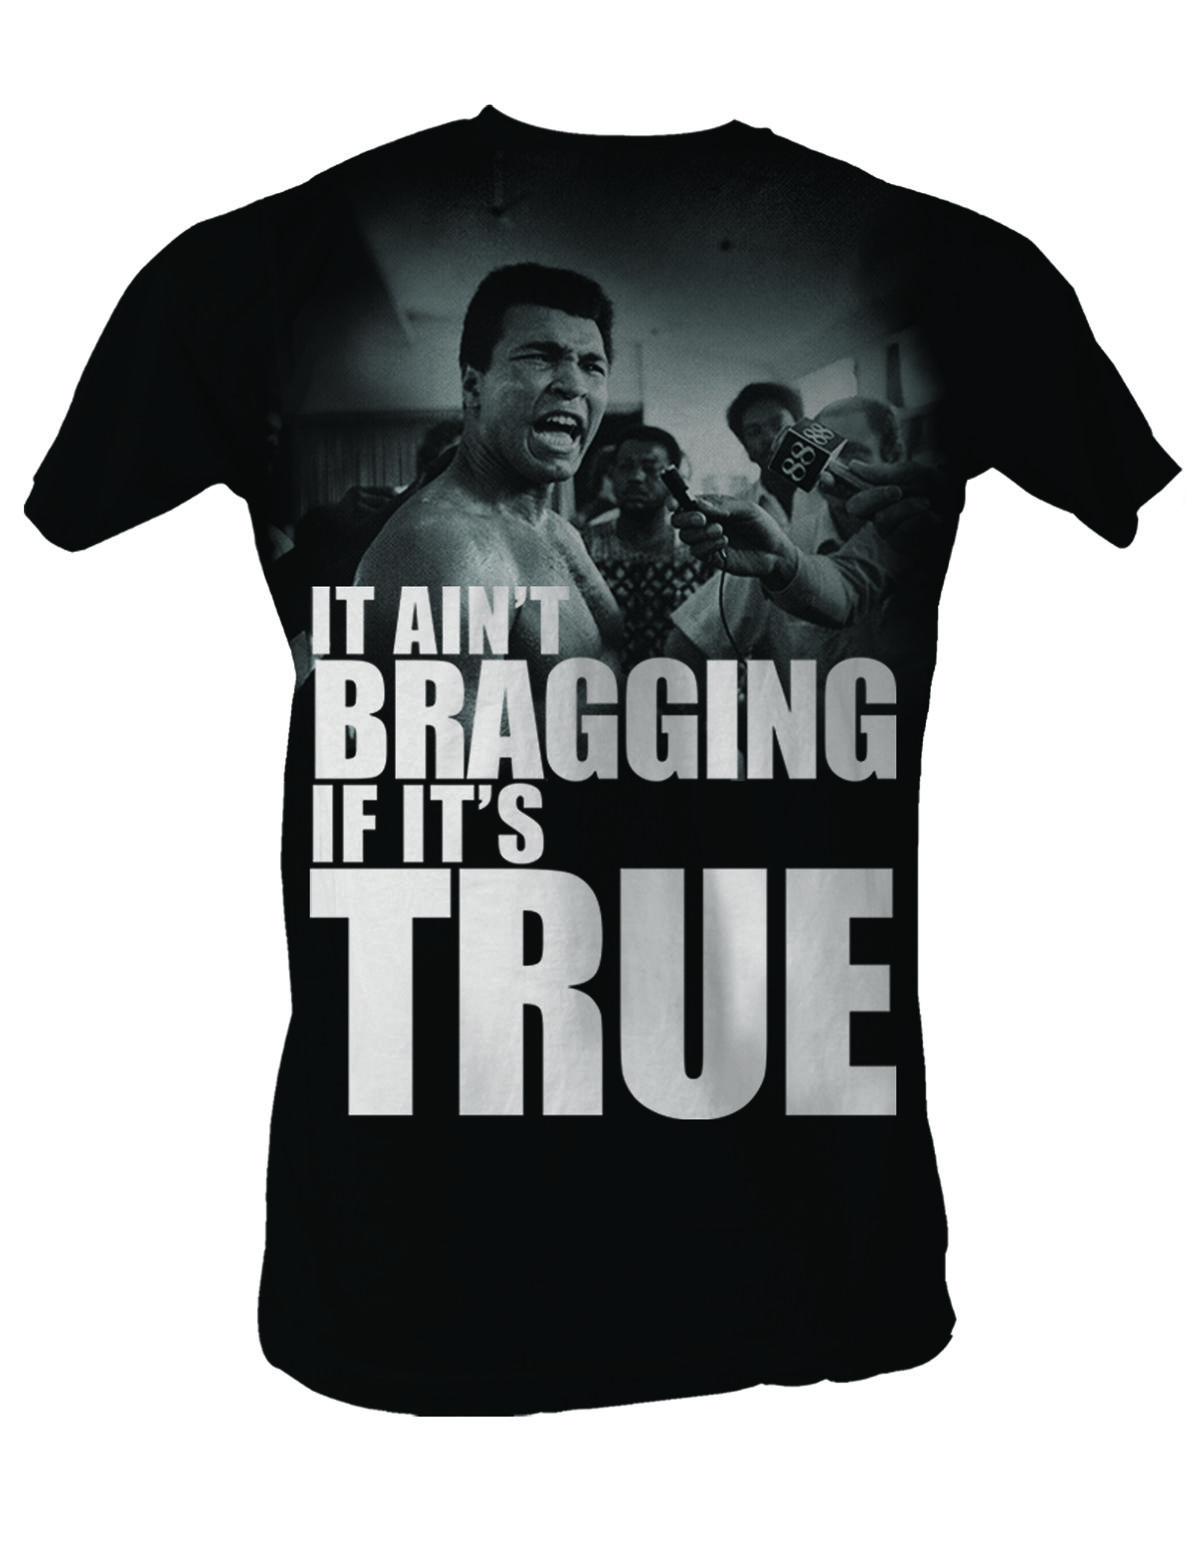 muhammad ali t shirt adult grimace black tee shirt. Black Bedroom Furniture Sets. Home Design Ideas